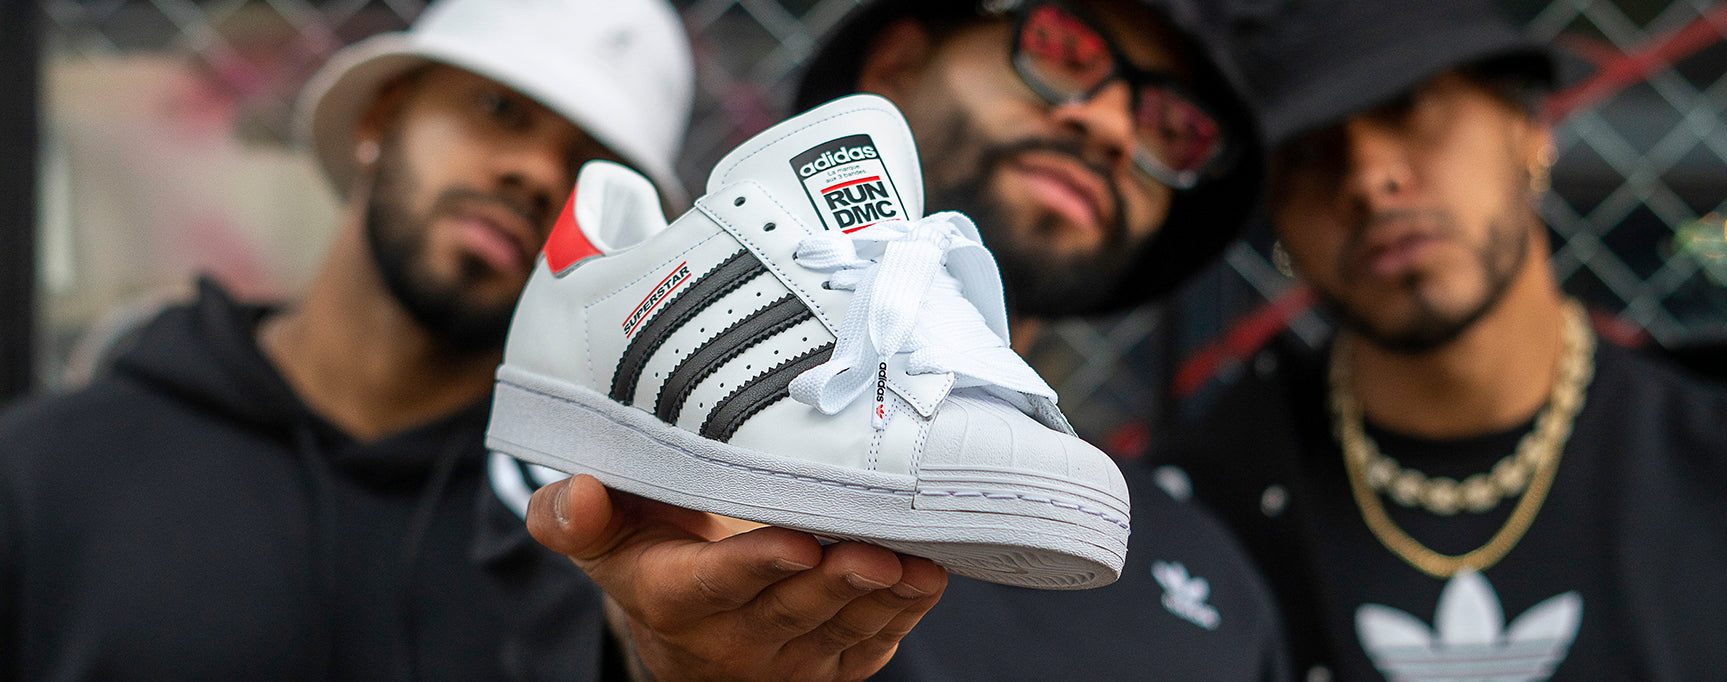 HYPE_Adidas_SuperStar_Run_DMC_FX7616